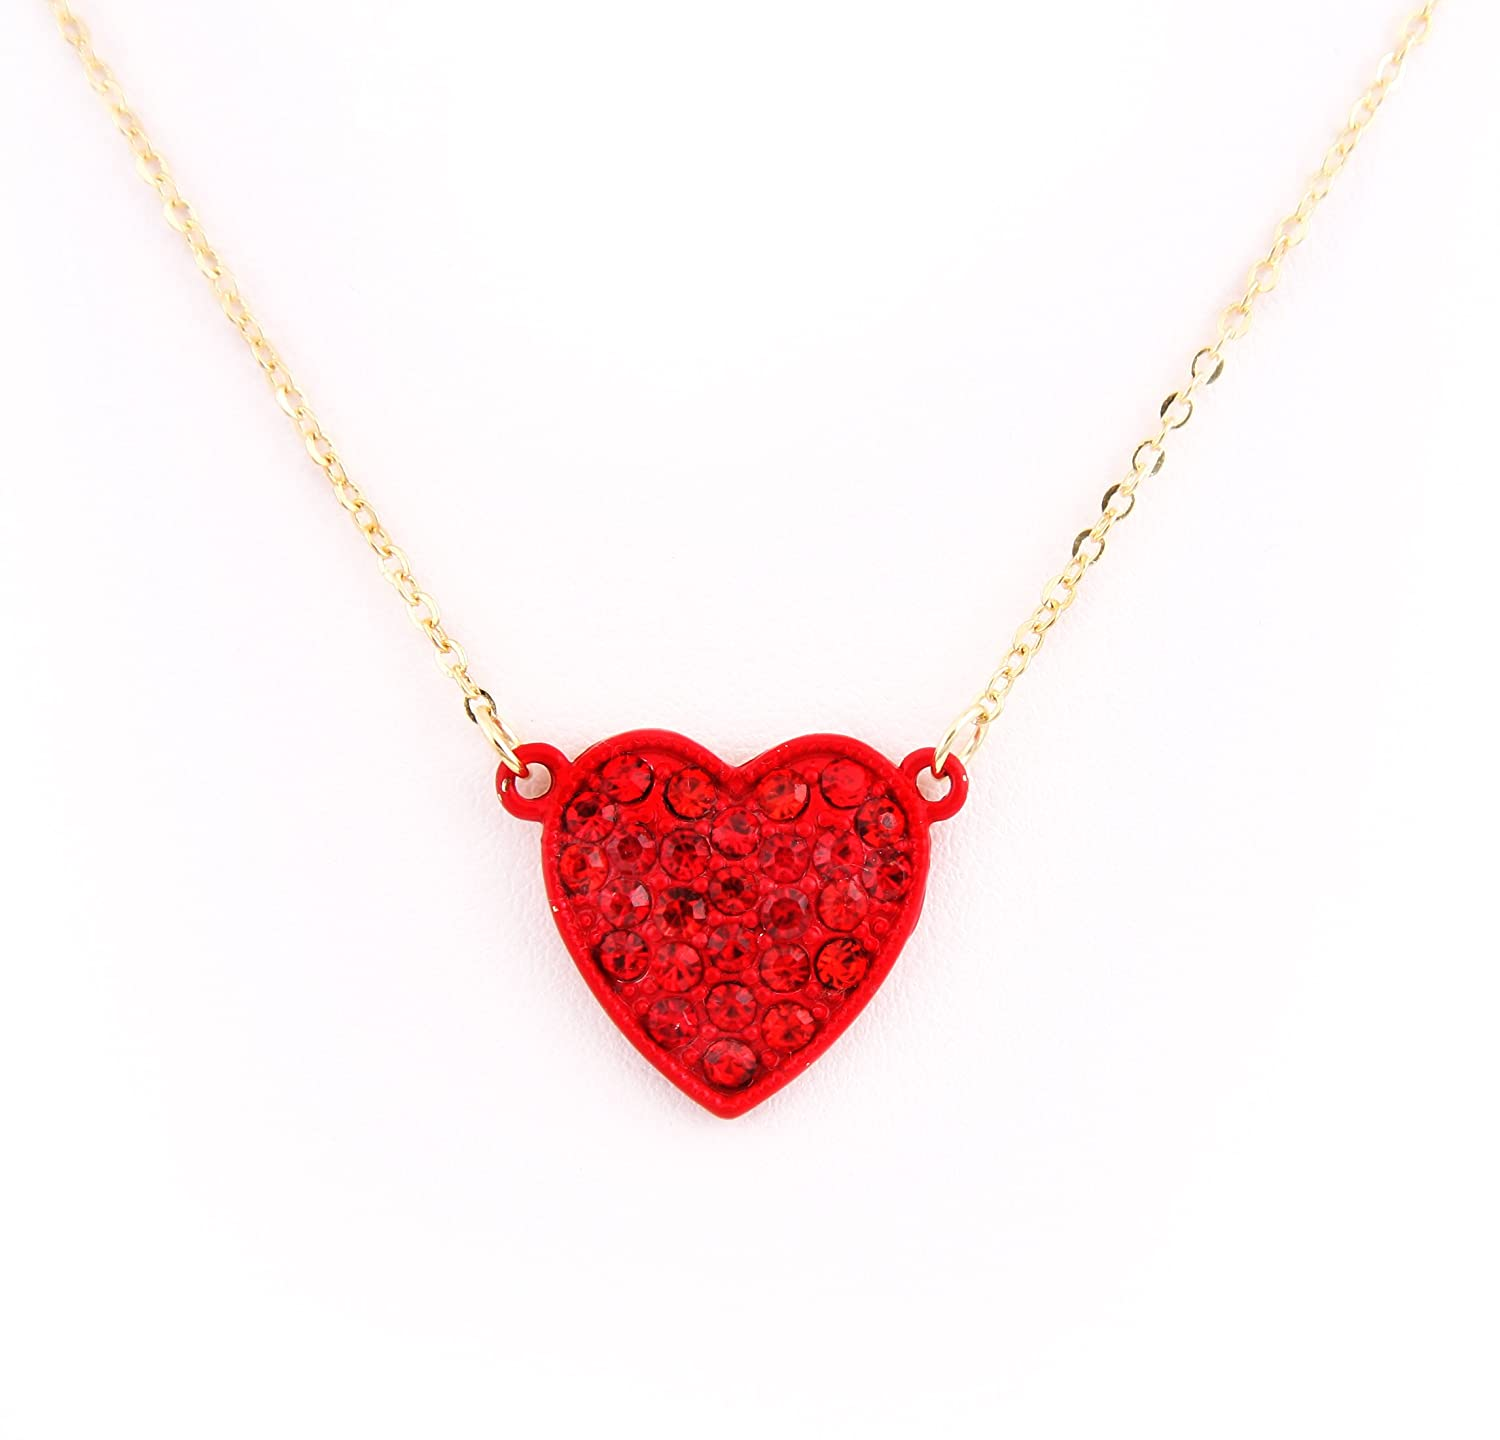 FN-5419 Crytsal Pave Pave Heart Pendant Valentine Necklace RED